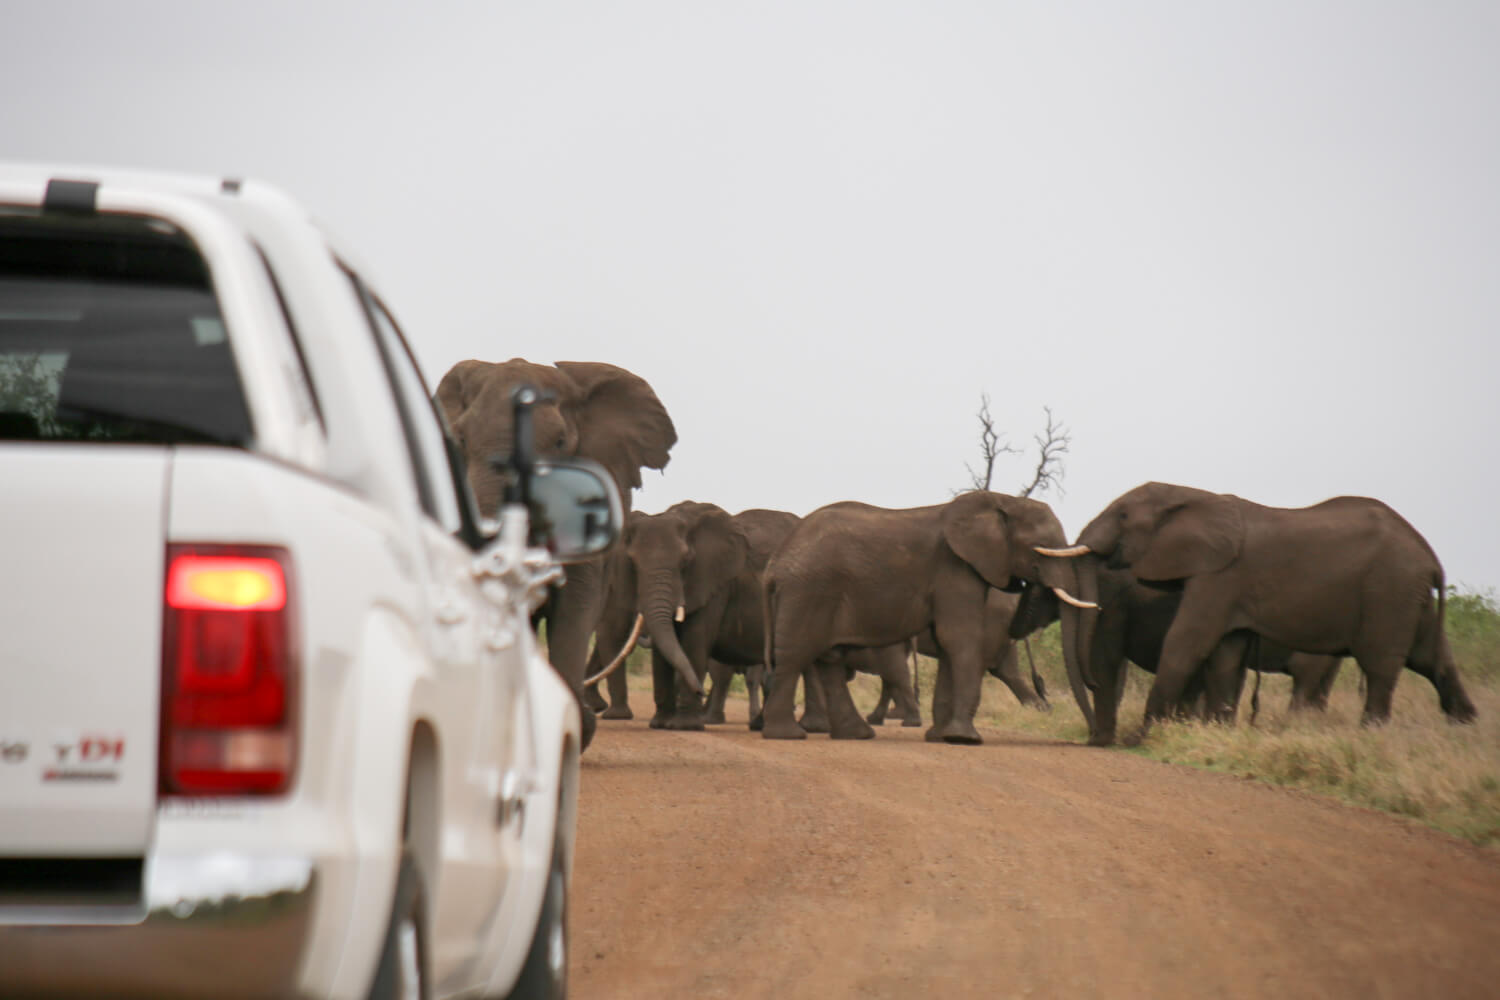 Elephants in the road in photos of Kruger National park